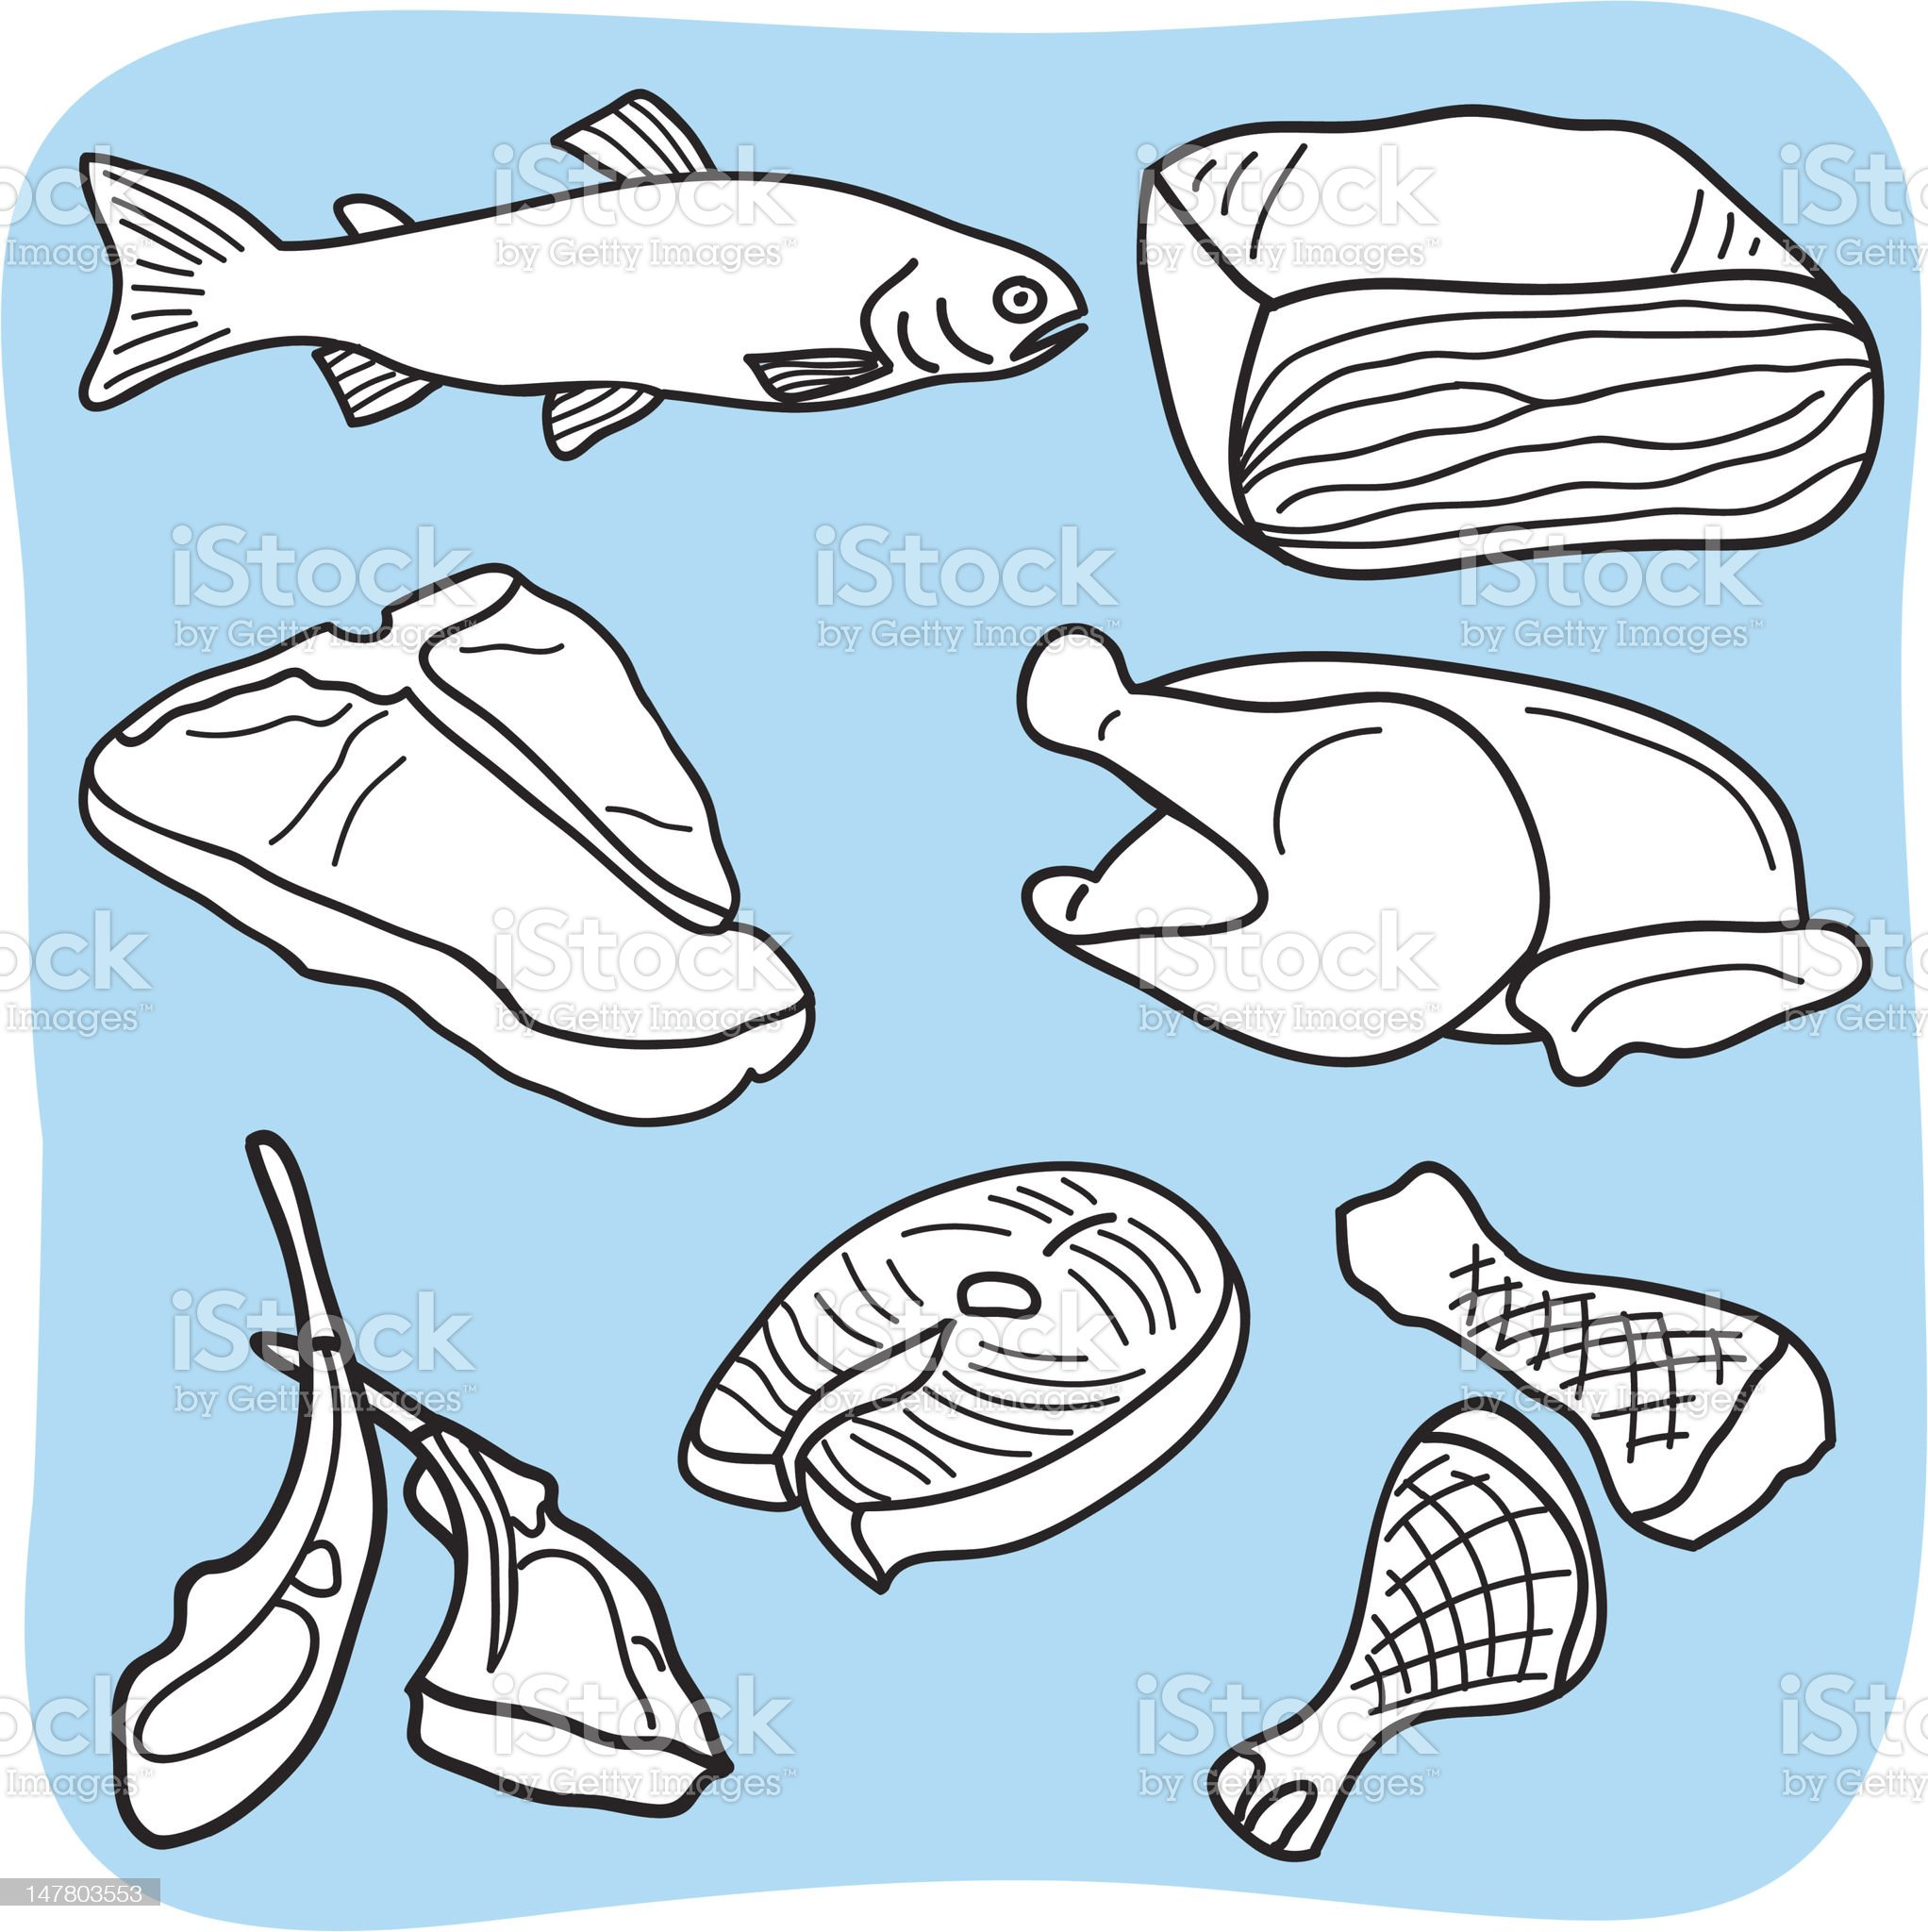 Drawing of meat, fish and poultry royalty-free stock vector art